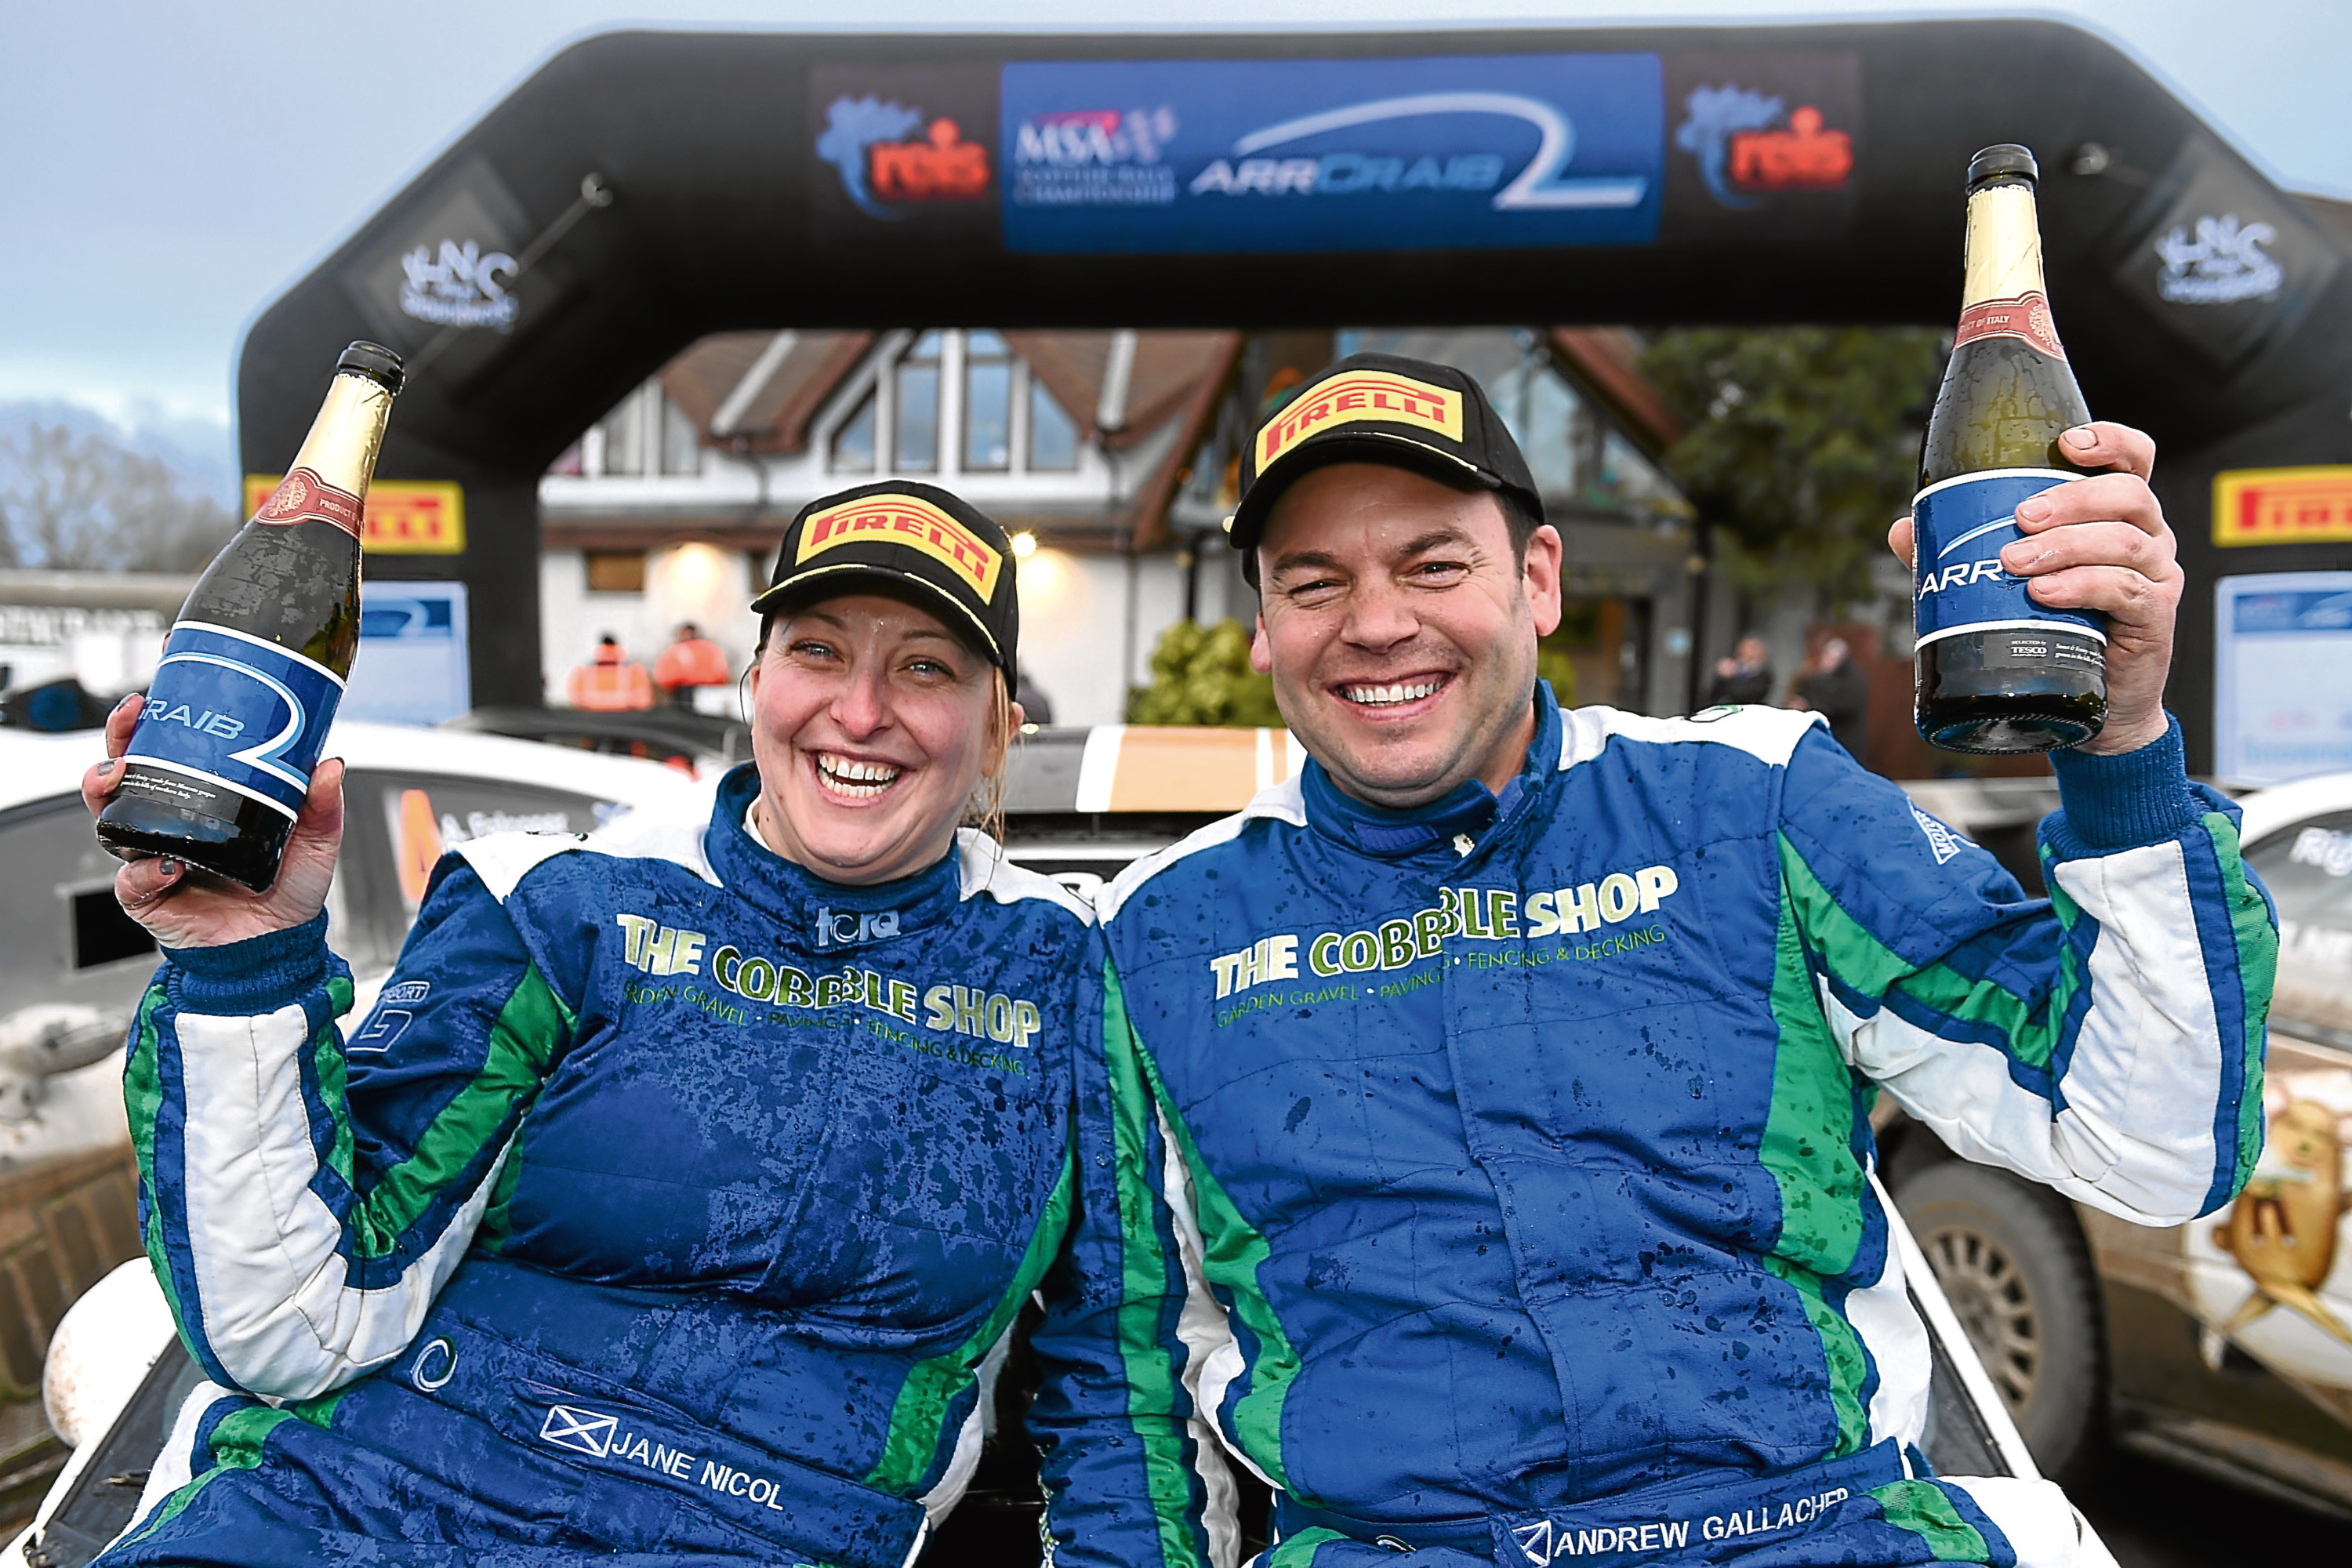 Navigator Jane Nicol of Edinburgh and Andrew Gallacher of Hurlford enjoy the moment. Pictures by Sandy McCook